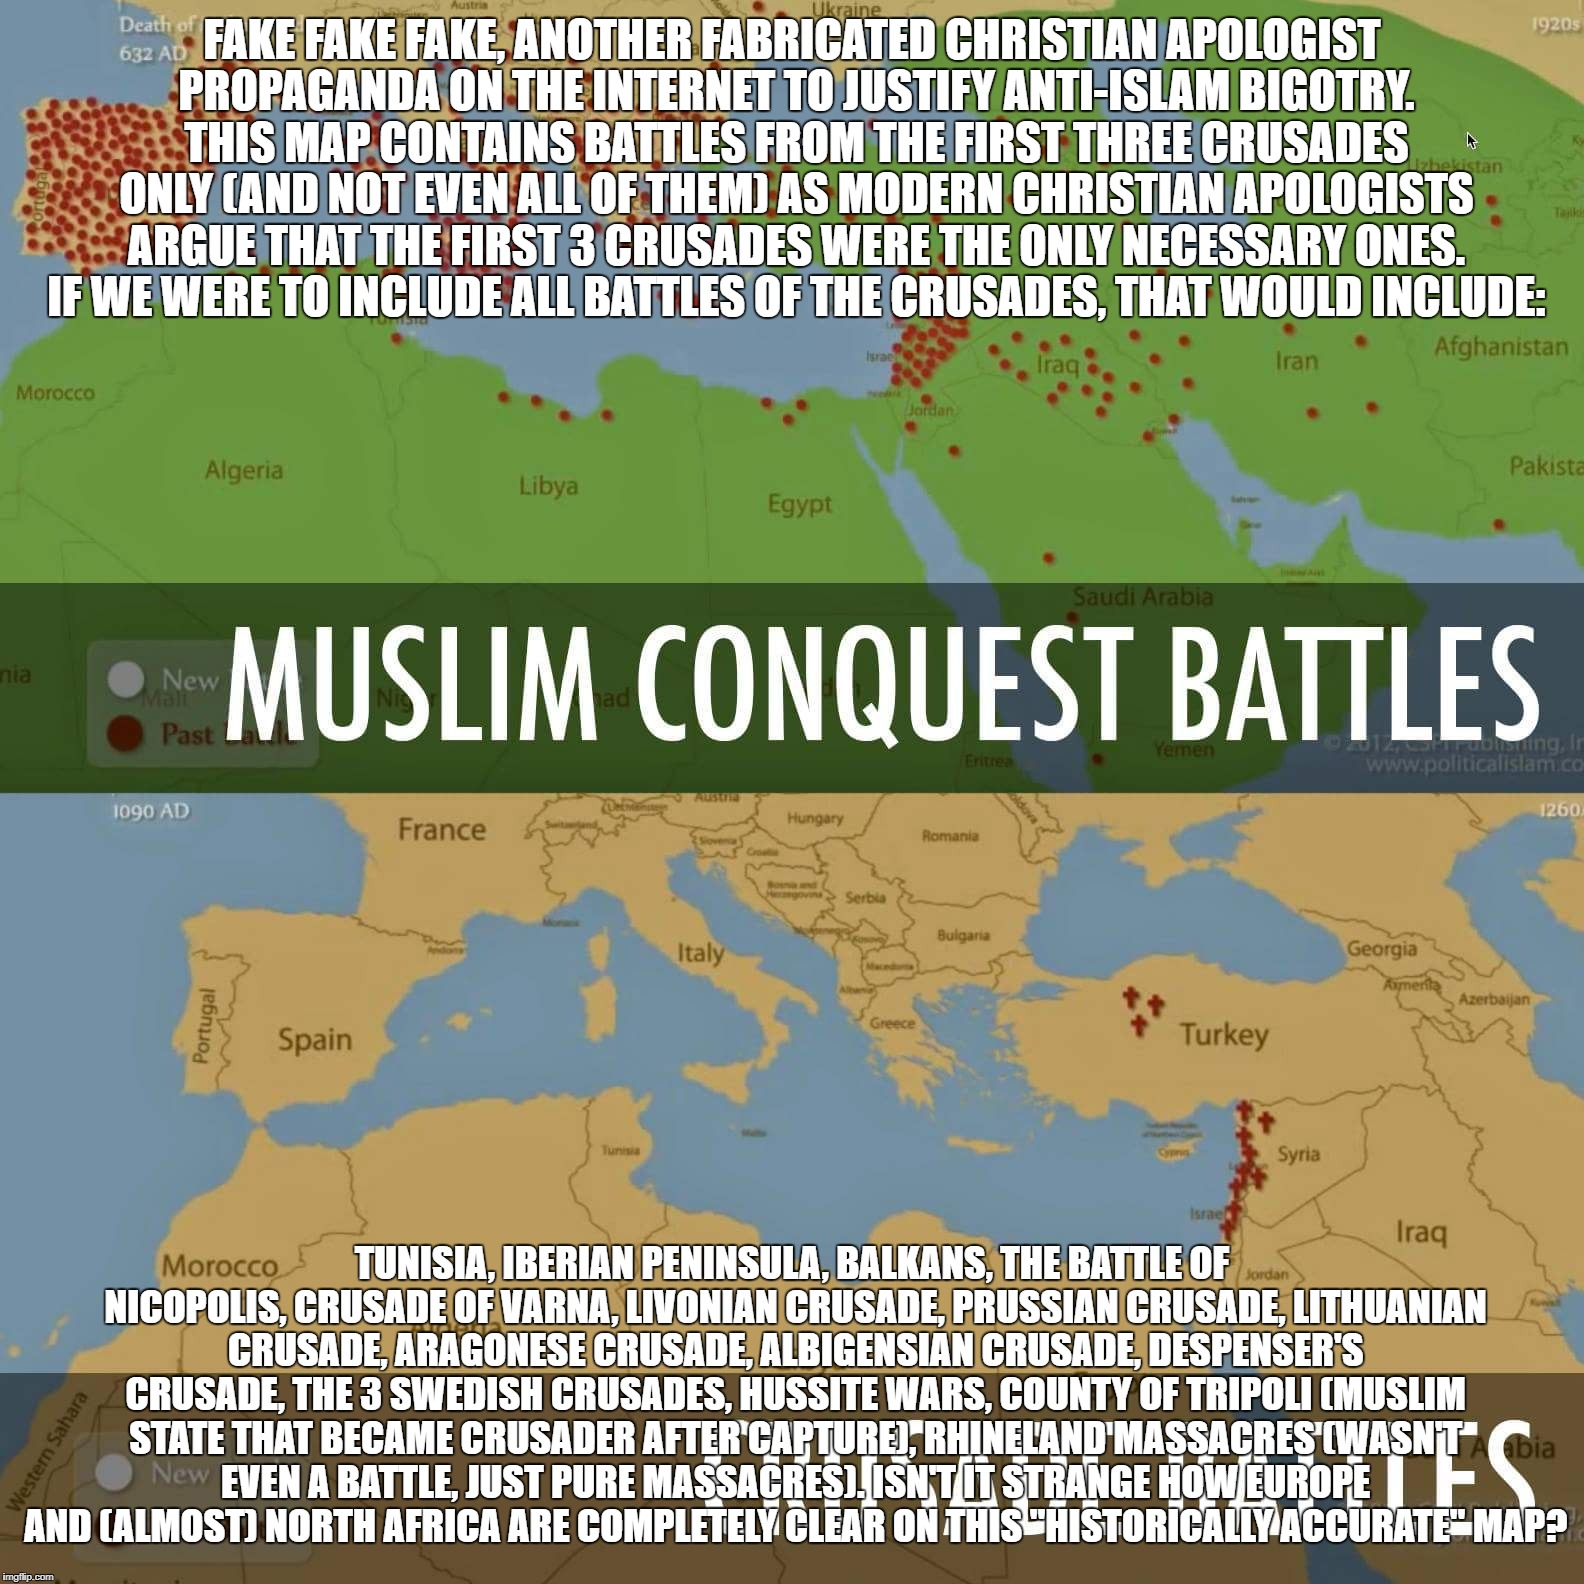 Debunking A Christian Apologist Propaganda | FAKE FAKE FAKE, ANOTHER FABRICATED CHRISTIAN APOLOGIST PROPAGANDA ON THE INTERNET TO JUSTIFY ANTI-ISLAM BIGOTRY. THIS MAP CONTAINS BATTLES F | image tagged in crusader,crusades,christian apologists,propaganda,islam,history | made w/ Imgflip meme maker